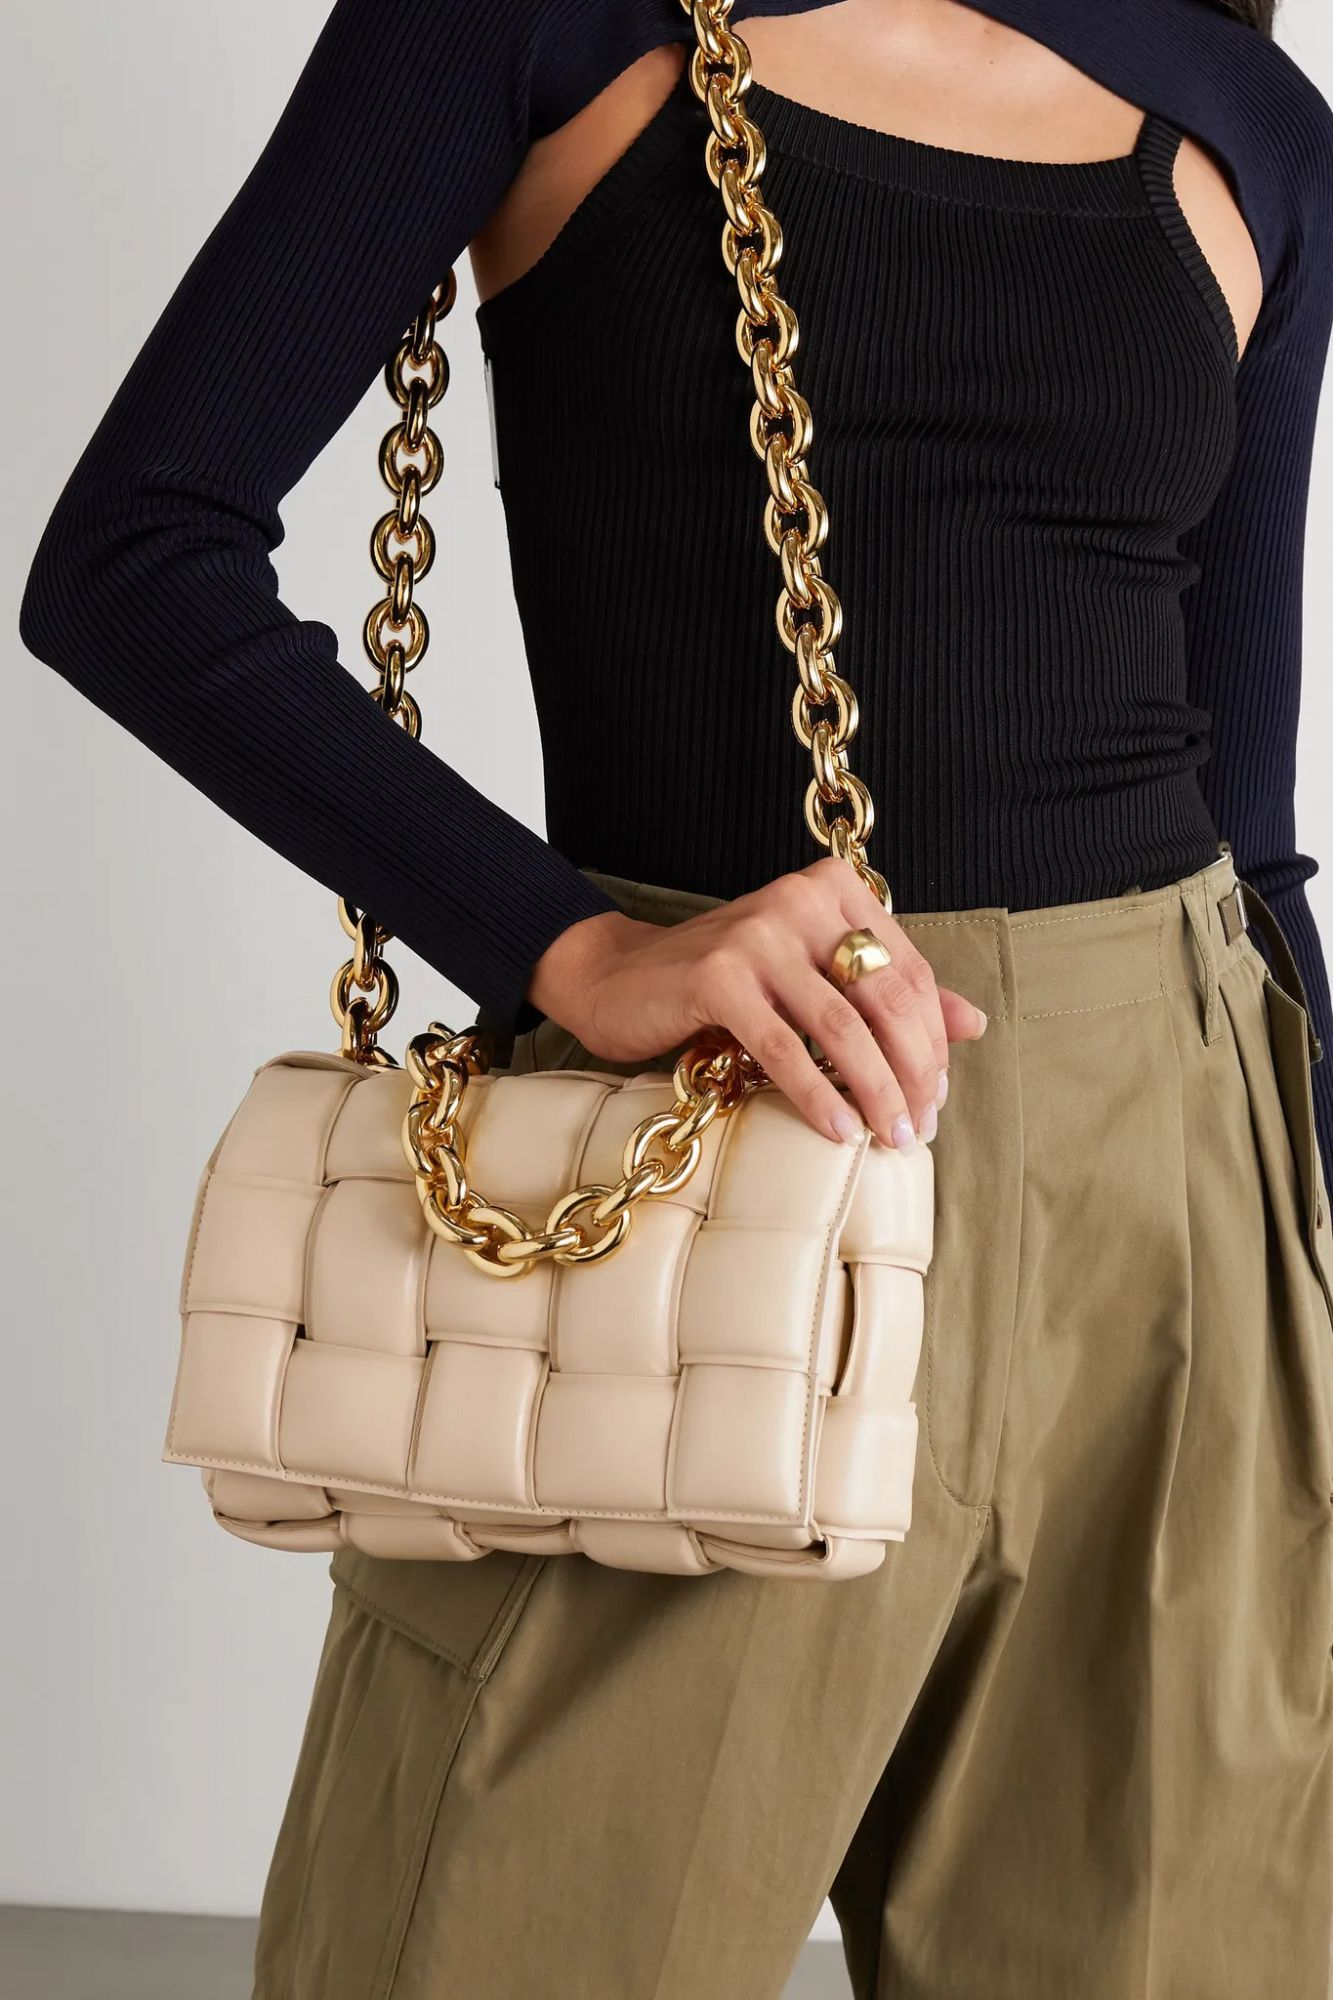 10 Quilted Bags That Go With Every Occasion